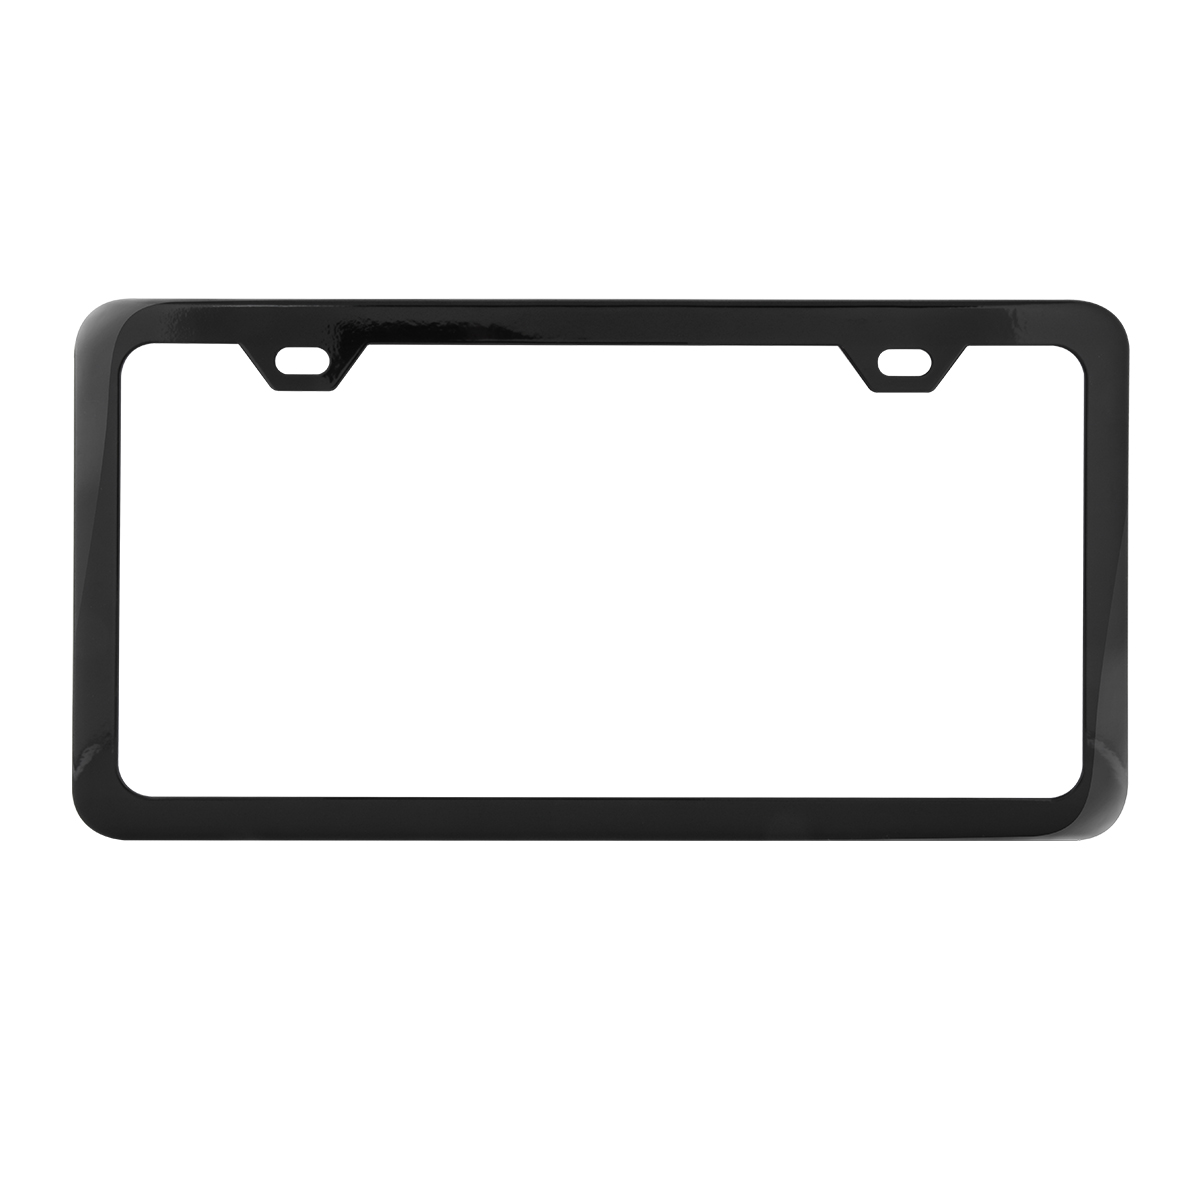 60403 Plain Semi-Gloss Black 2 Hole License Plate Frame